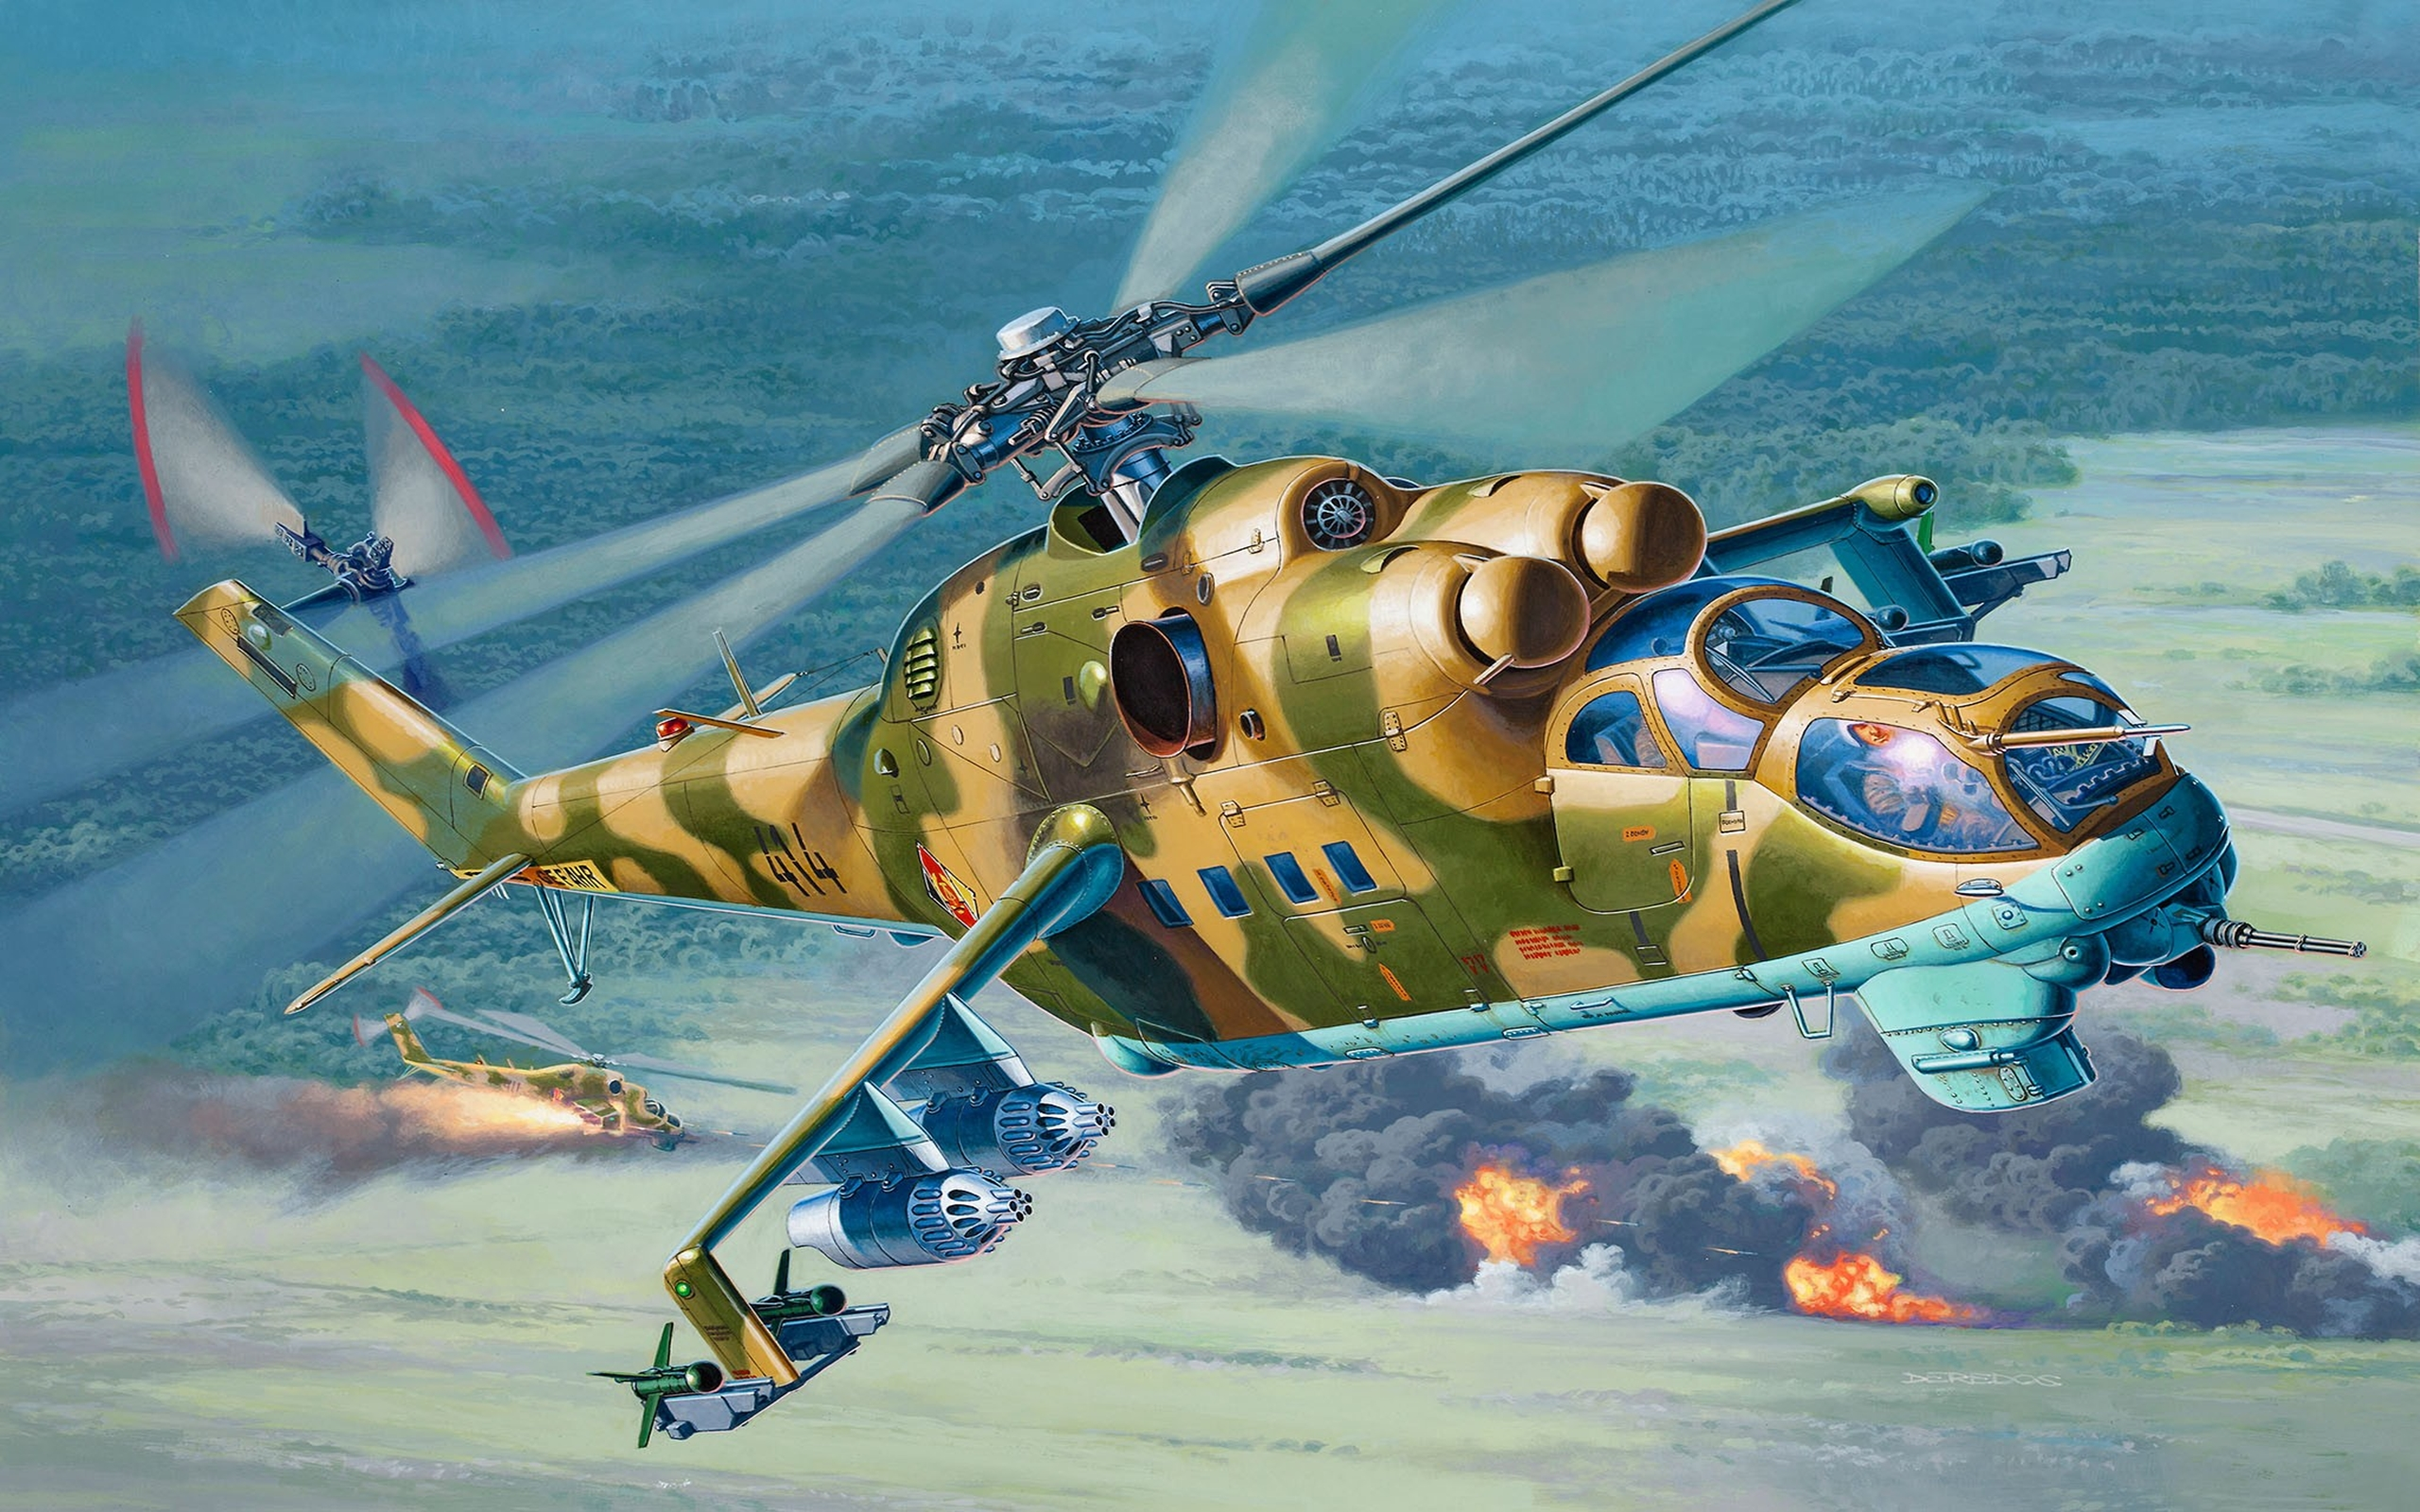 Airplane Wallpaper Iphone X Revell 04942 Mil Mi 24d Hind 1 48 Wallpapers13 Com